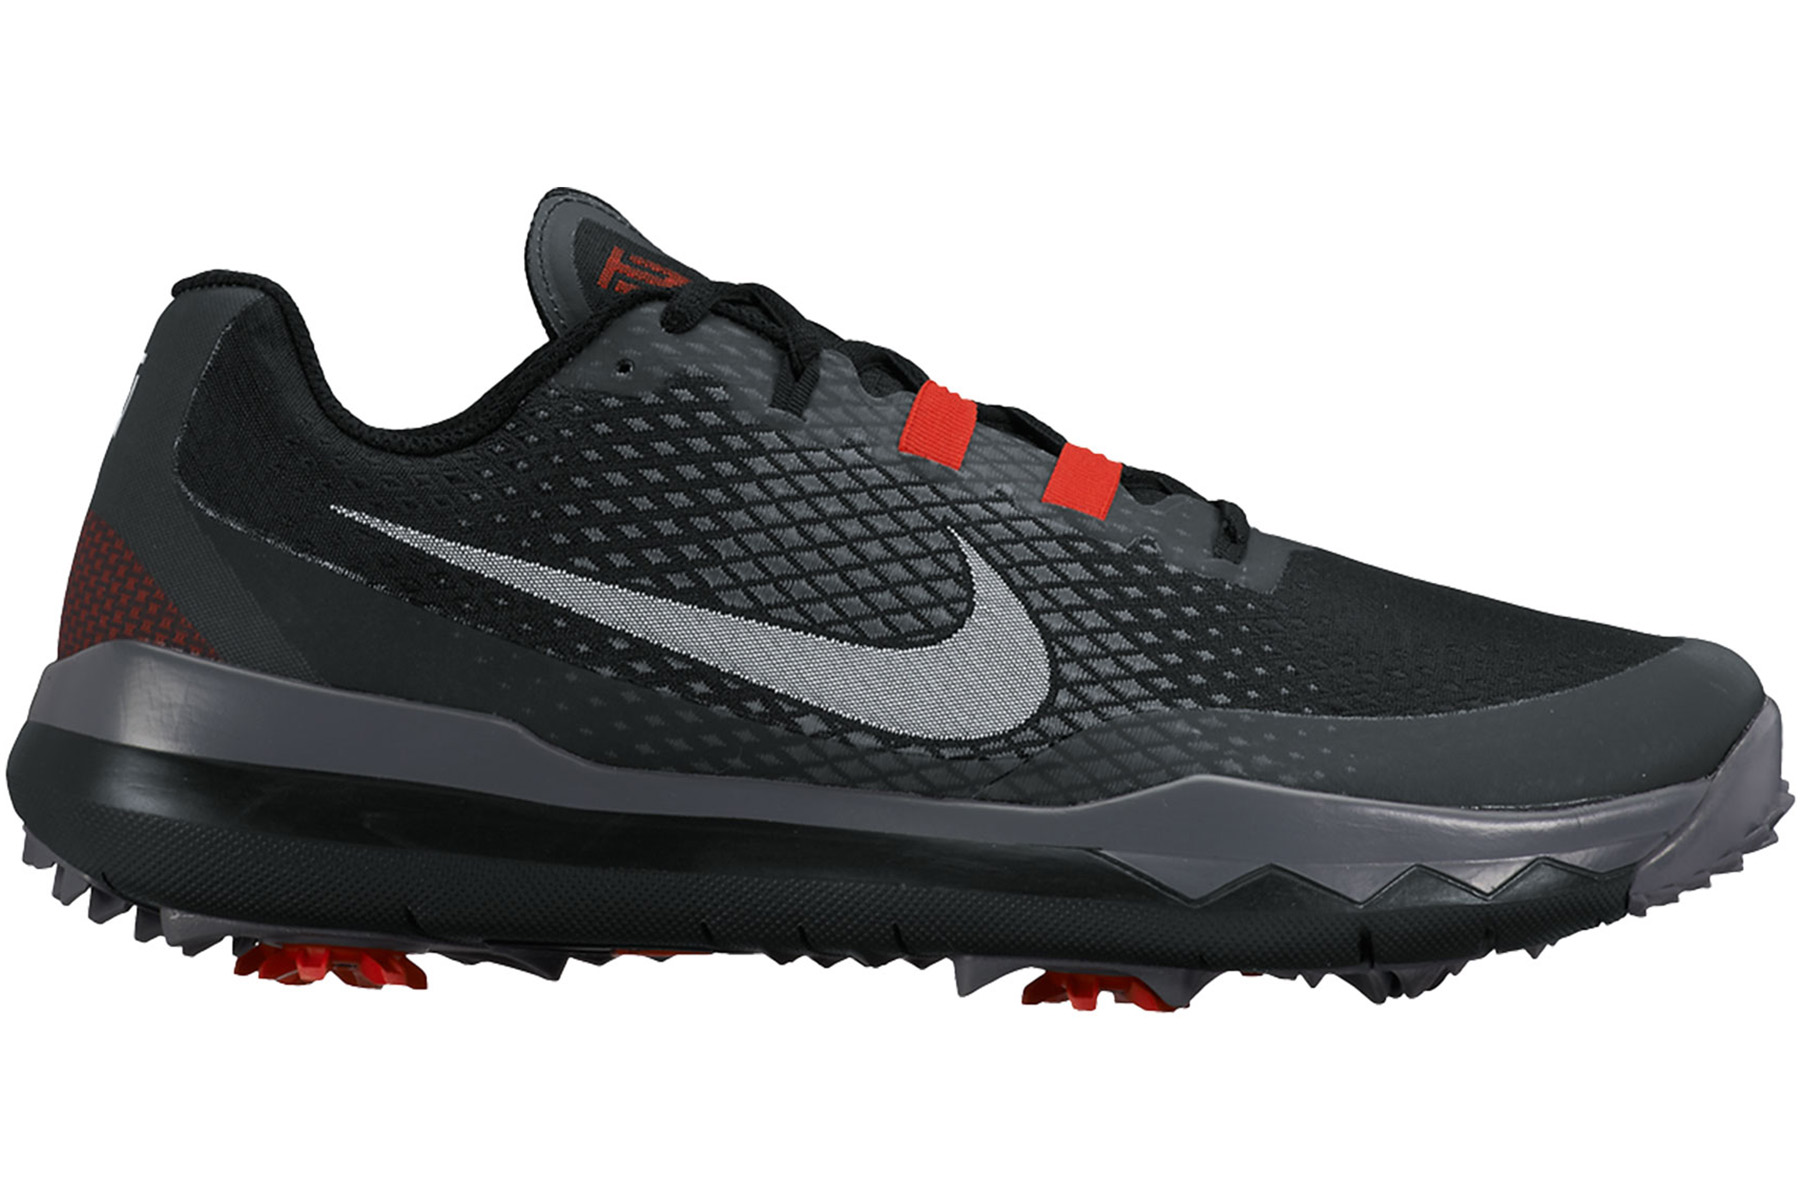 Nike Golf TW \u002715 Shoes